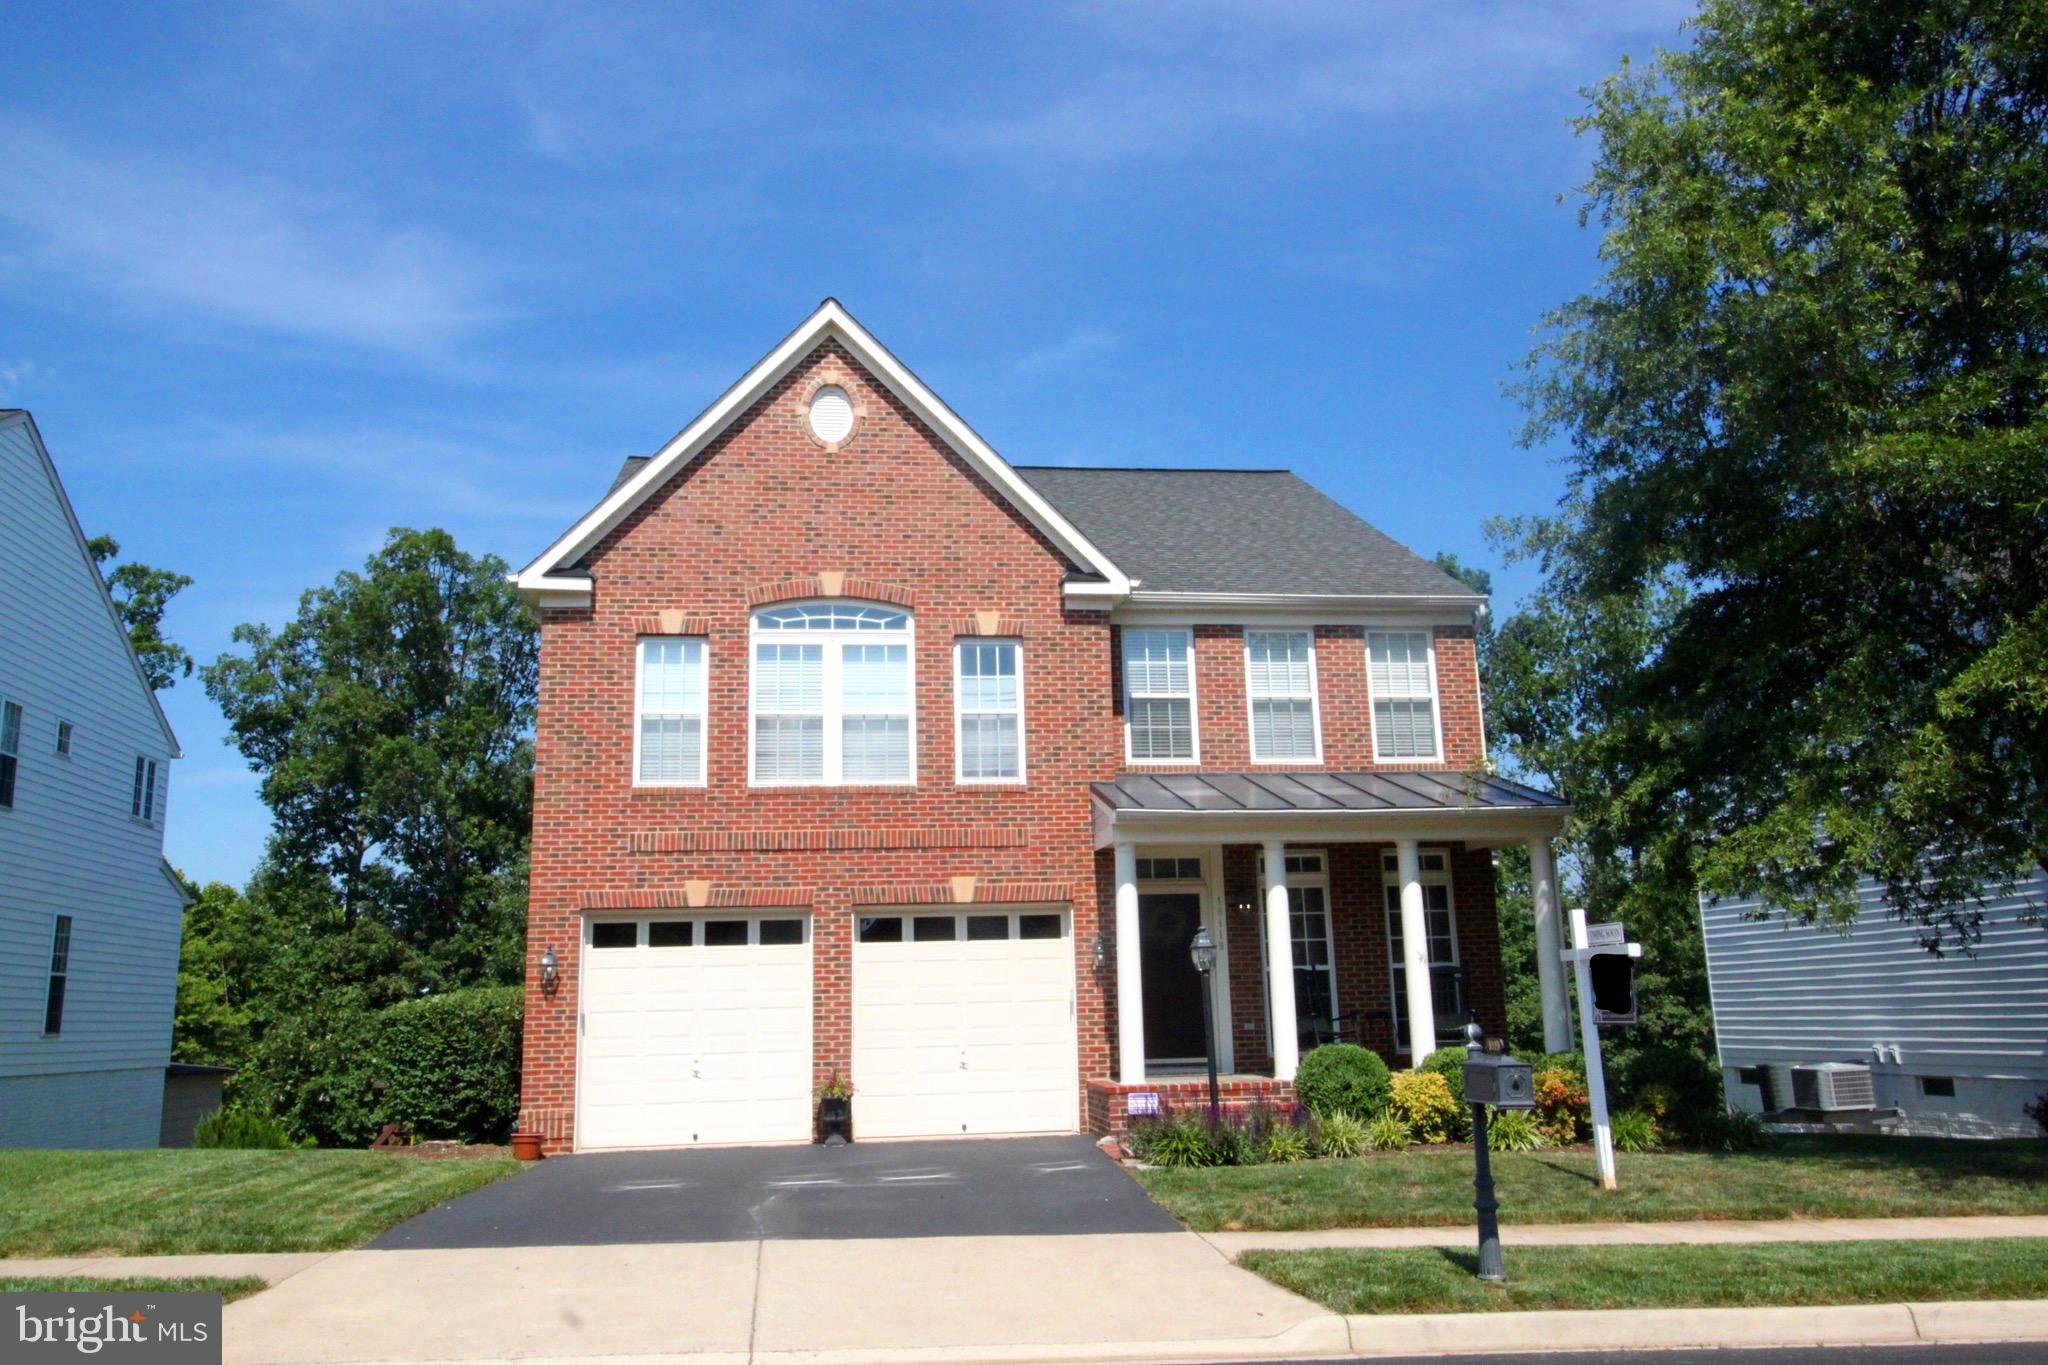 √ Gainesville VA Homes for Sale in Gainesville VA Houses for Sale 20155